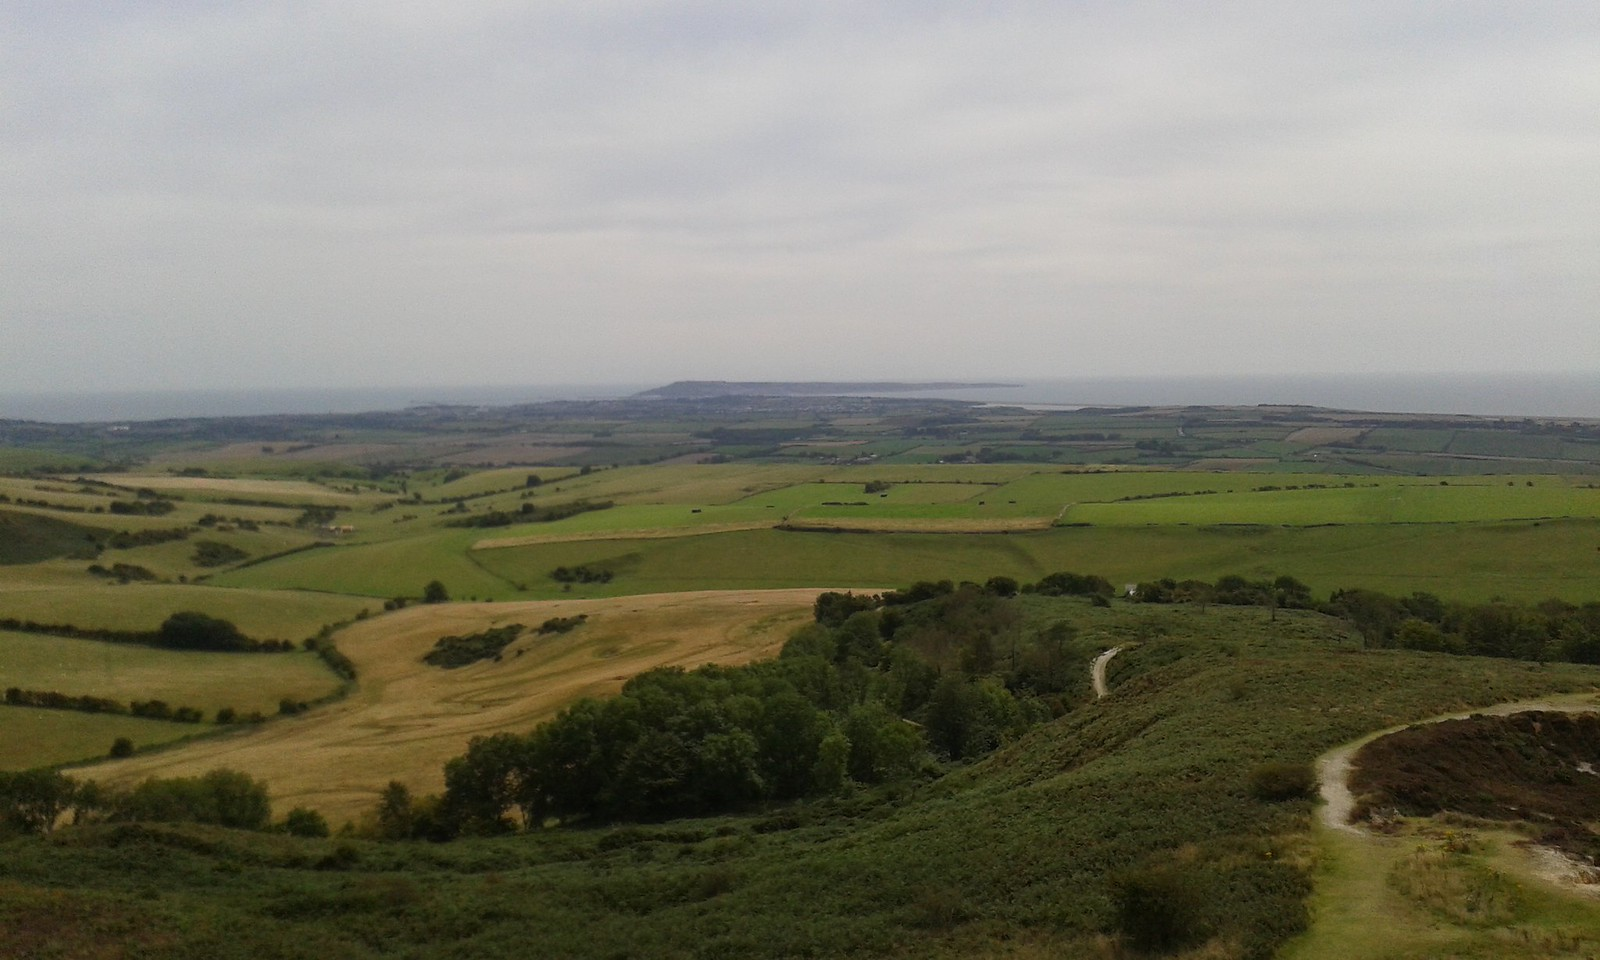 20150816_133057 View from Hardy Monument towards Portland